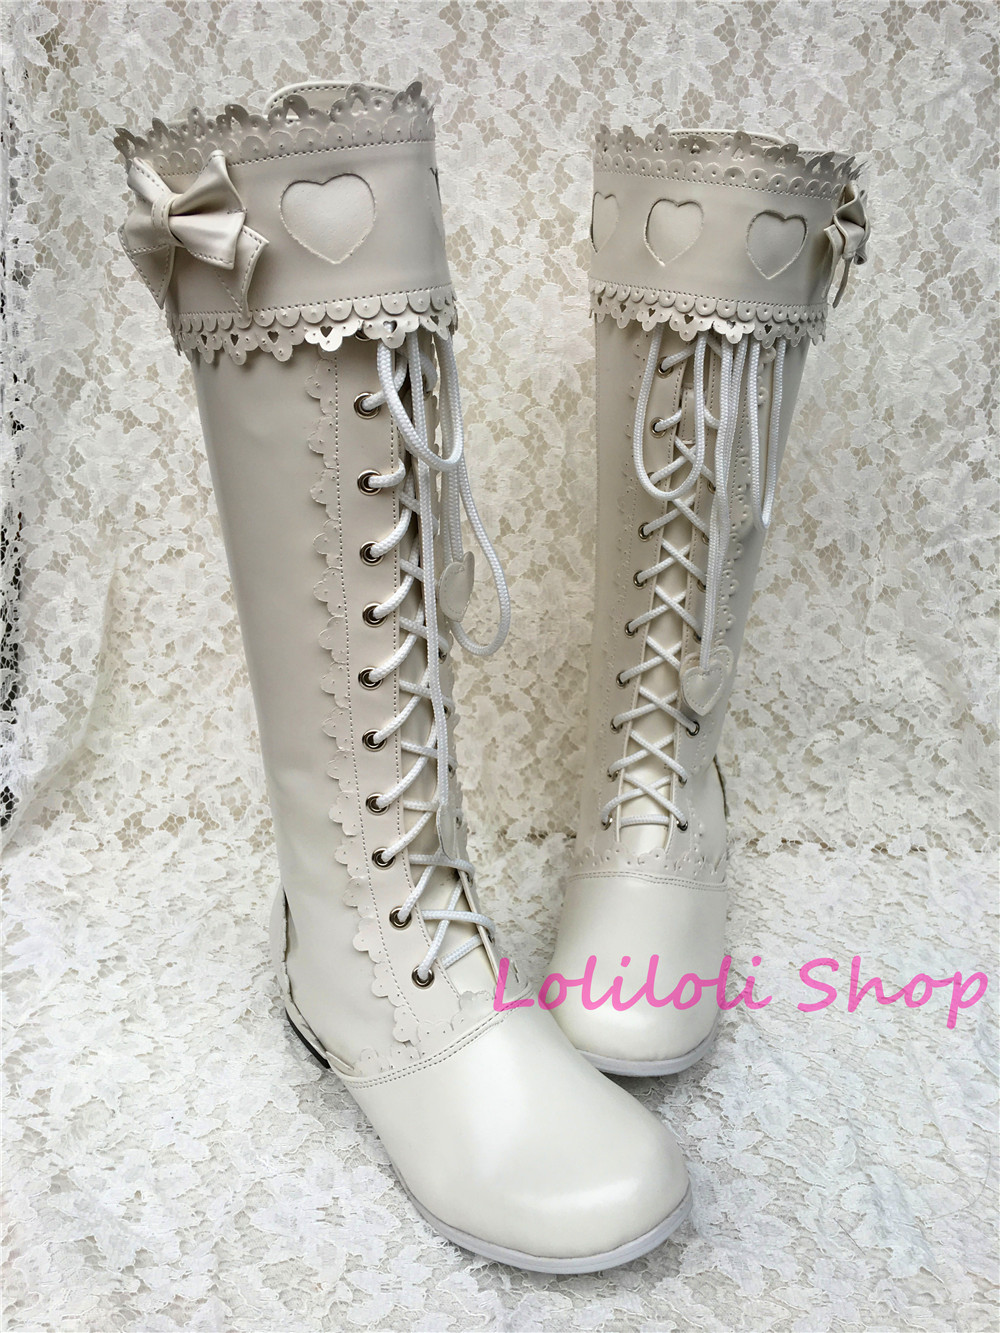 Princess sweet lolita shoes Lolilloliyoyo antaina Japanese design shoes custom white high-topped boots with lace and bow 9022